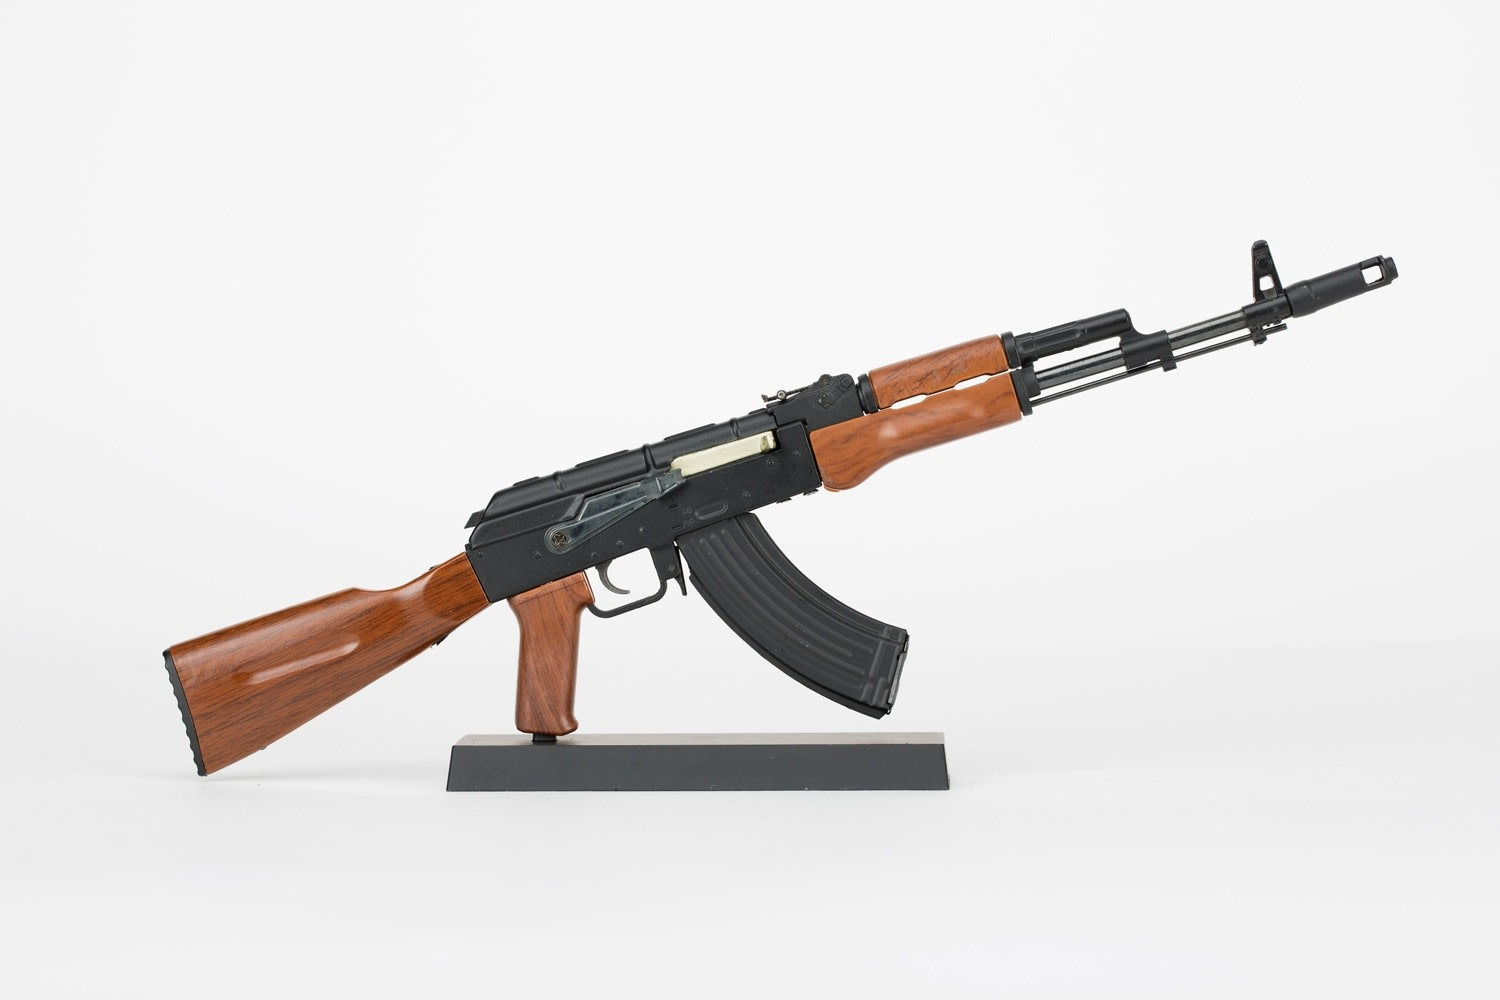 ATI AK-47 Mini Replica 1/3 scale